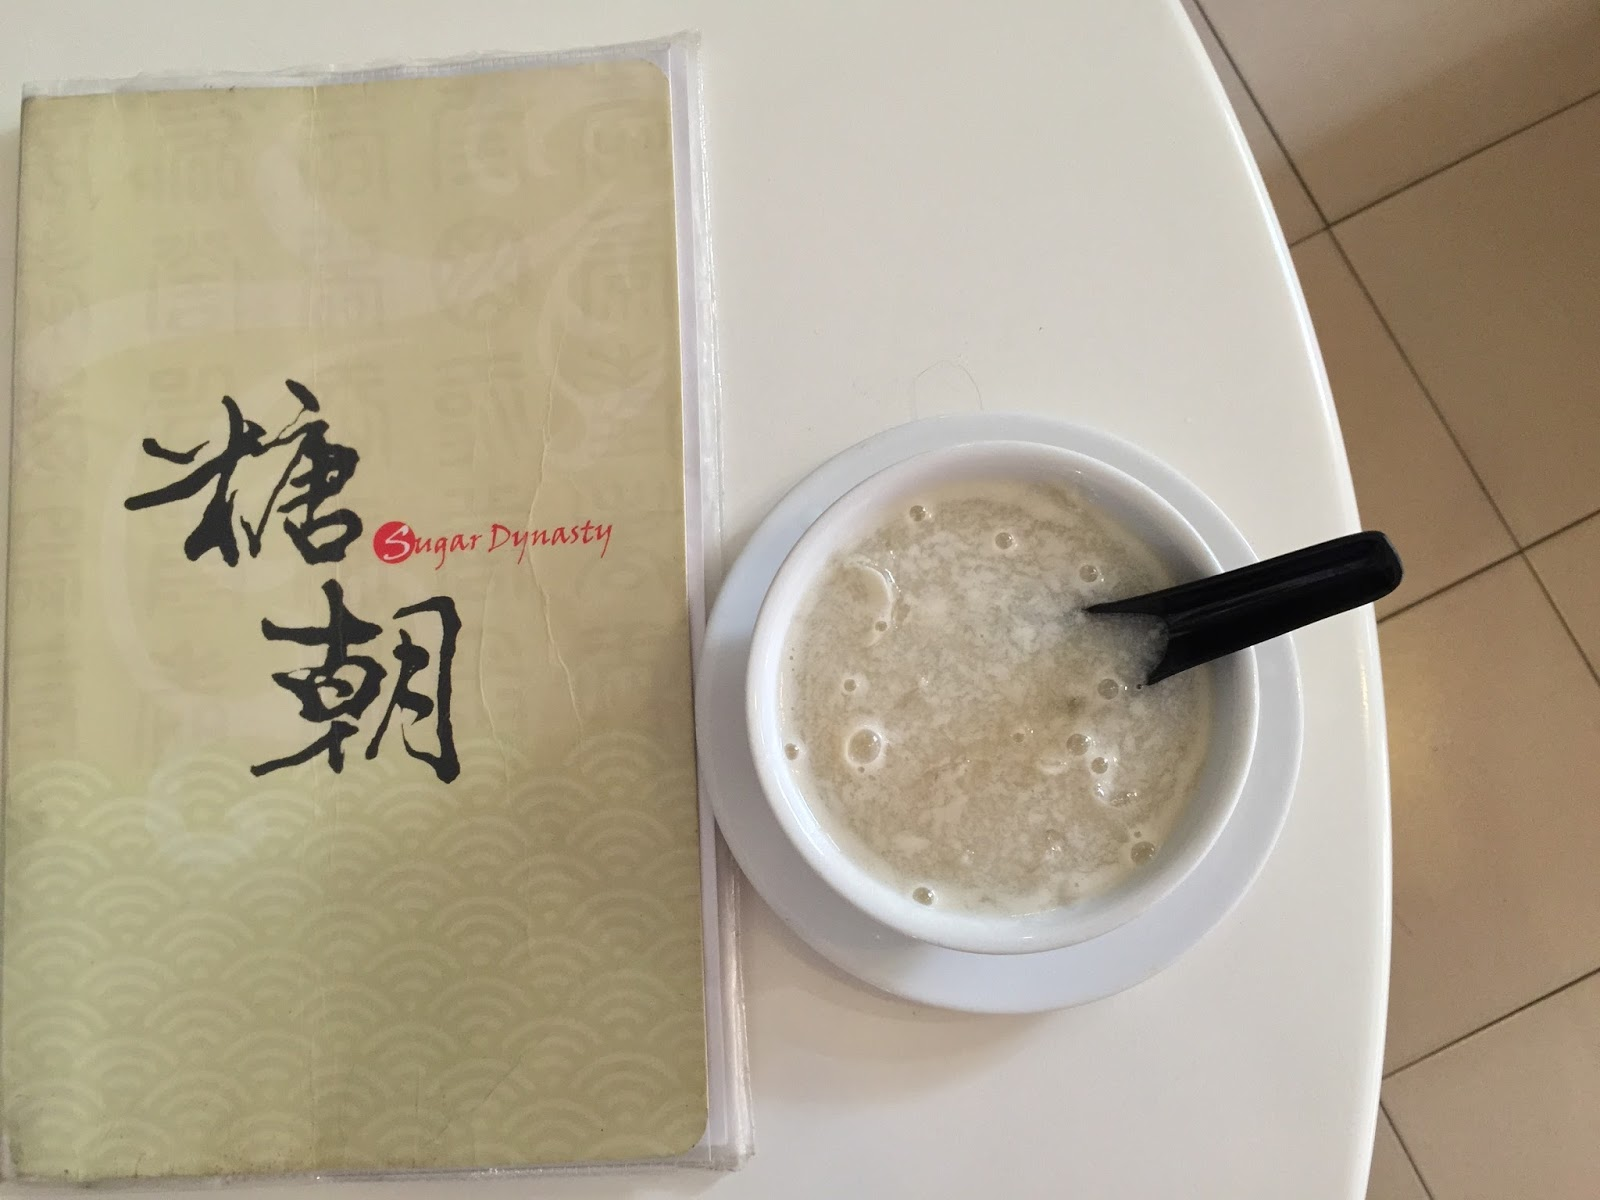 Penang Sugar Dynasty - Ginko Beancurd with Barley